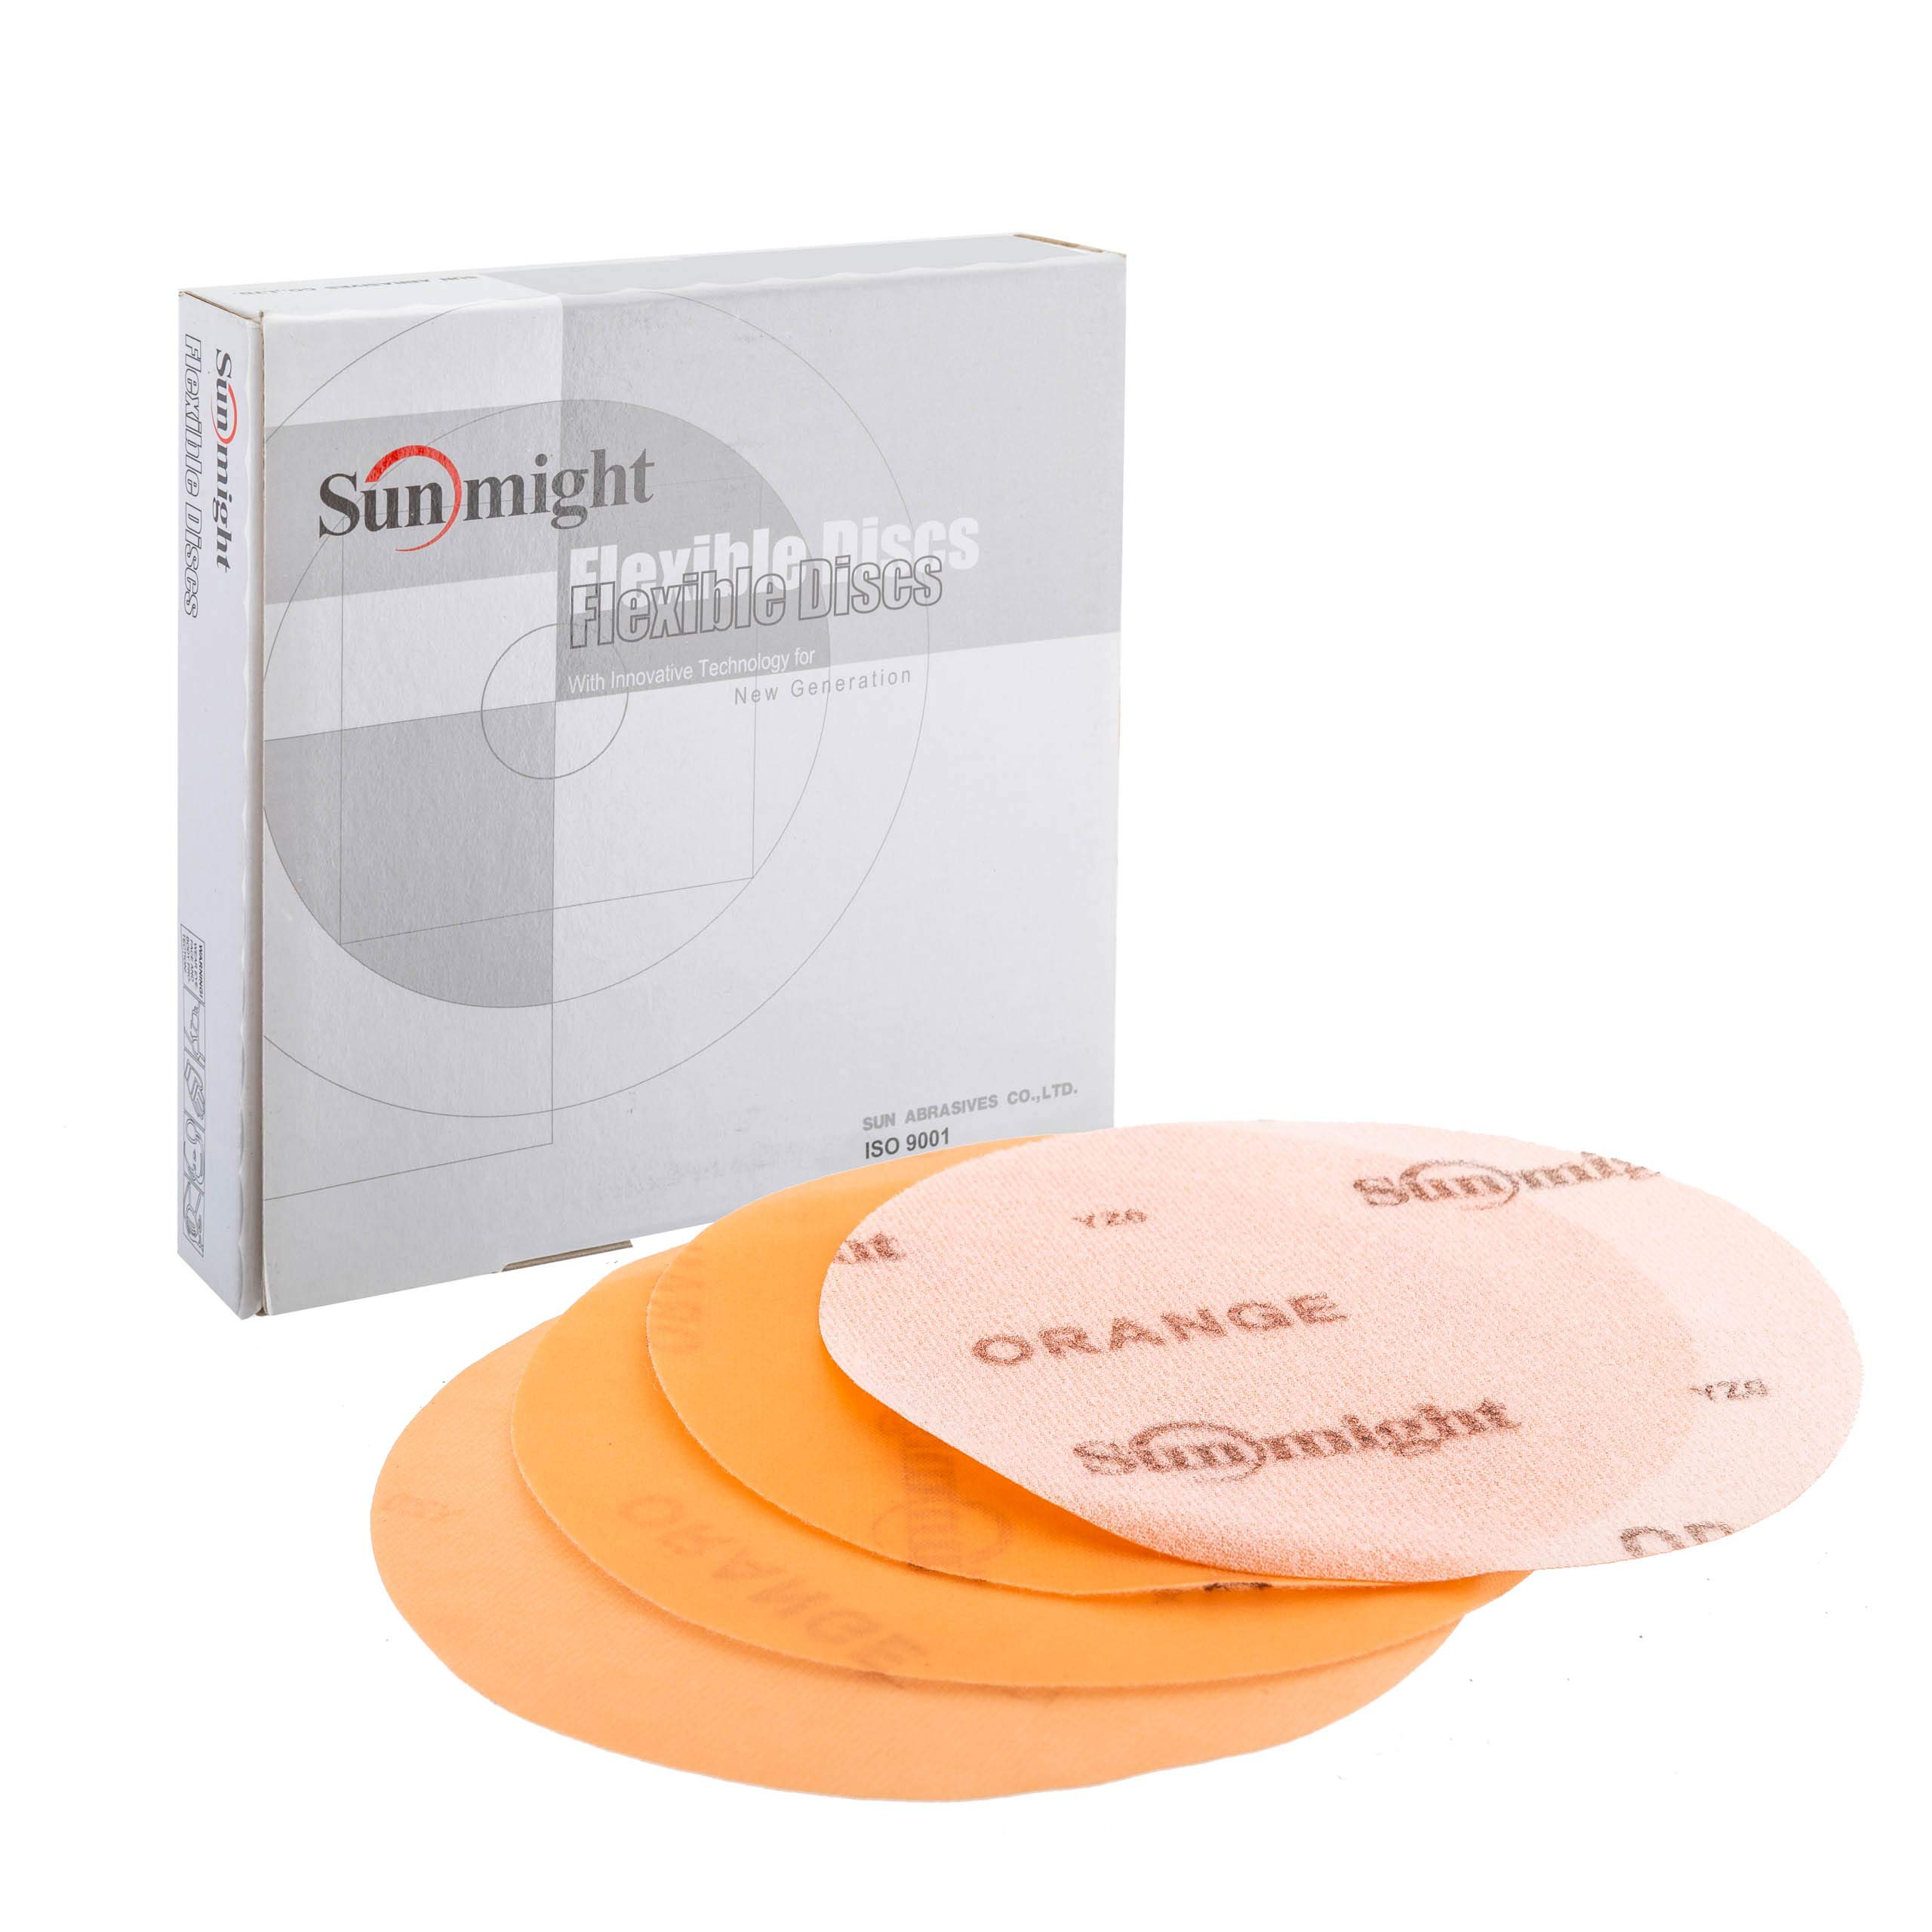 Sunmight 60222 1 Pack 6'' No Hole Flexible Disc